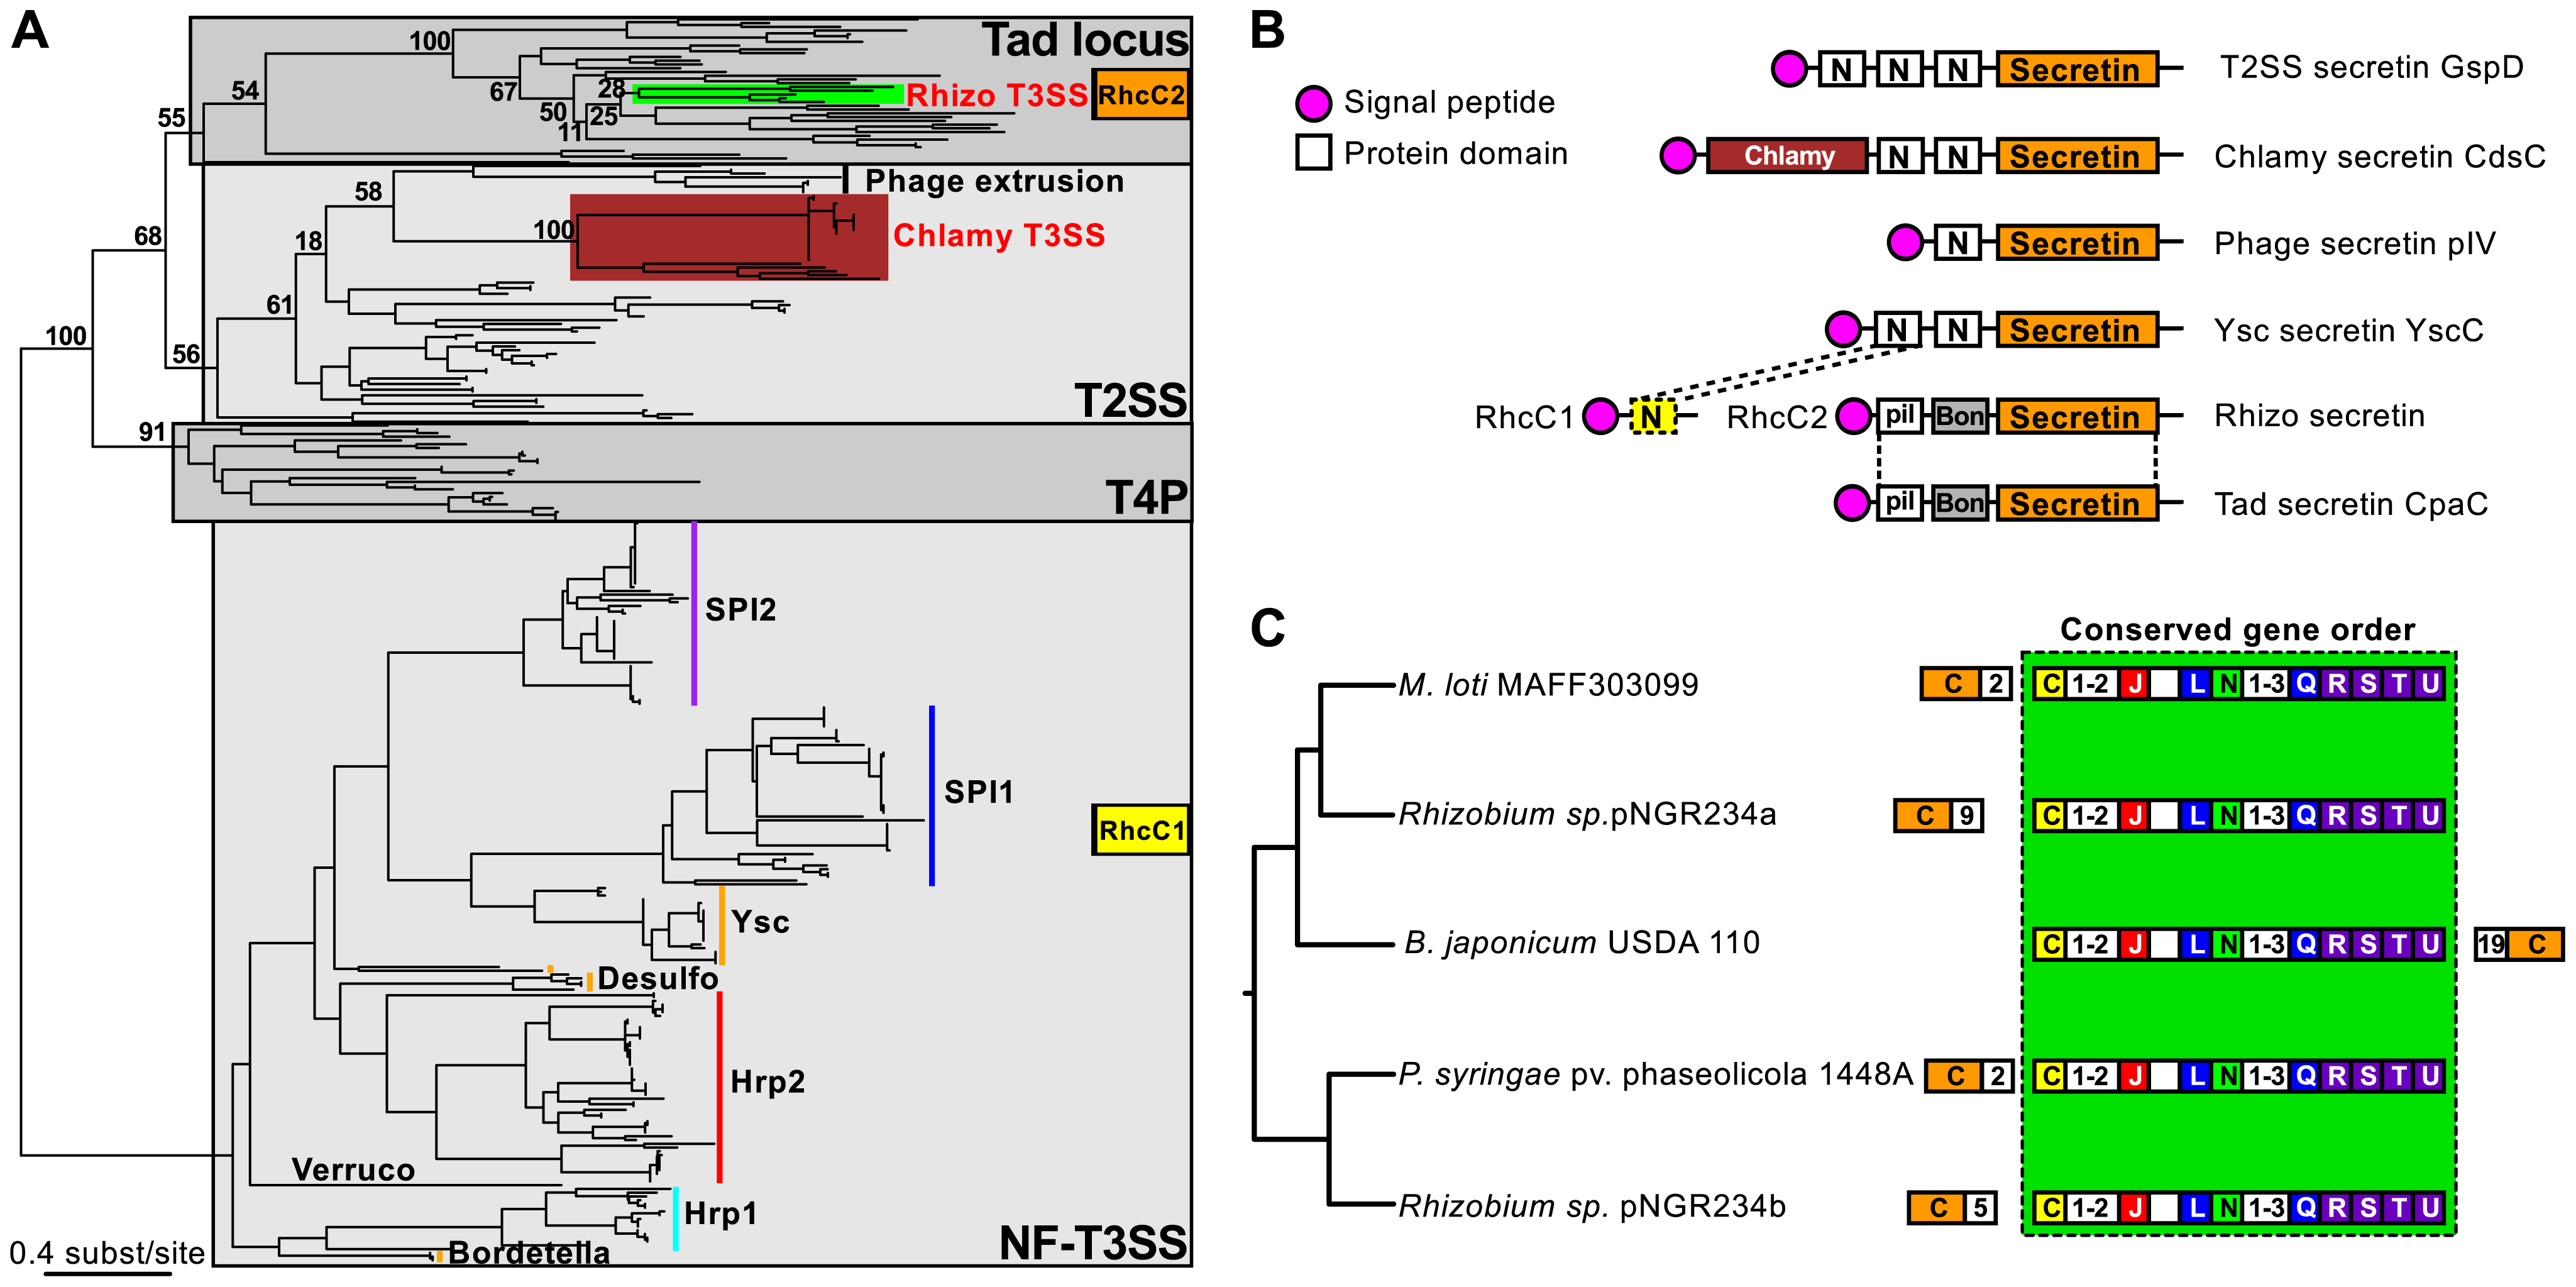 Evolutionary history, domain architecture, and genetic organization of the NF-T3SS secretins.